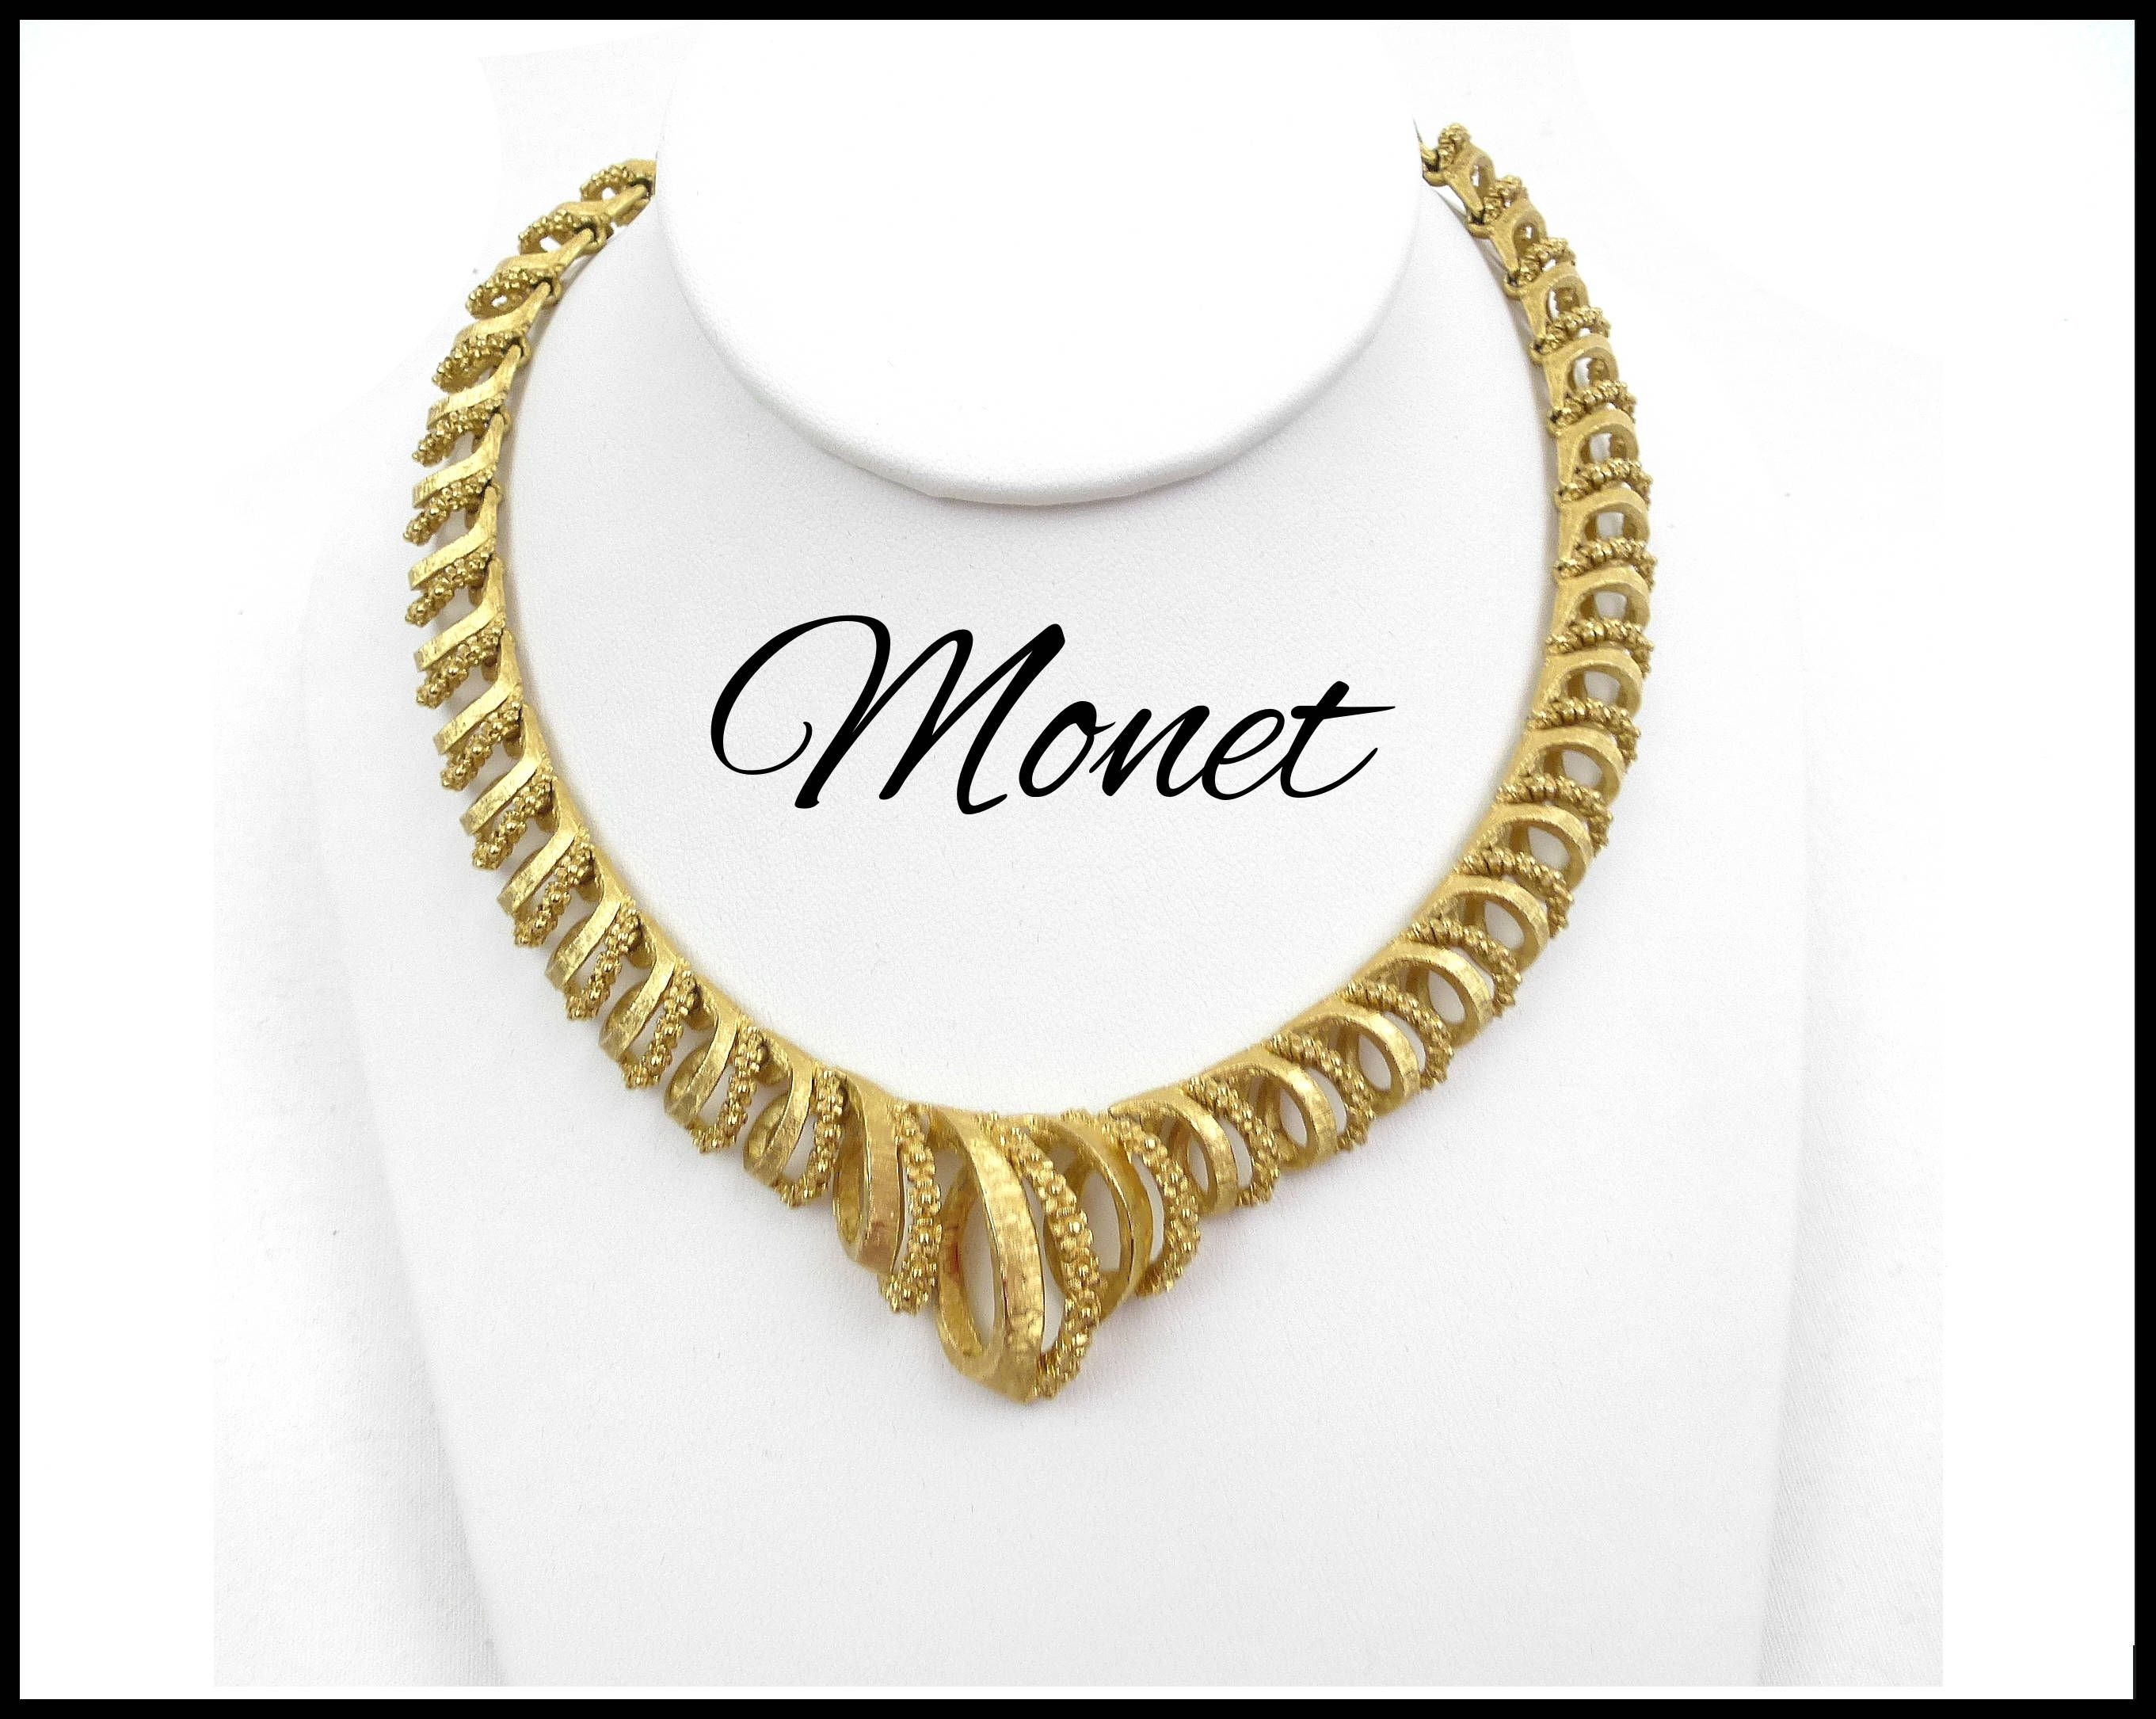 Gold Tone Chain Choker Necklace and Pierced Earrings Set Vintage Gold Statement Necklace Set Gold Chain Choker and Dangle Earrings